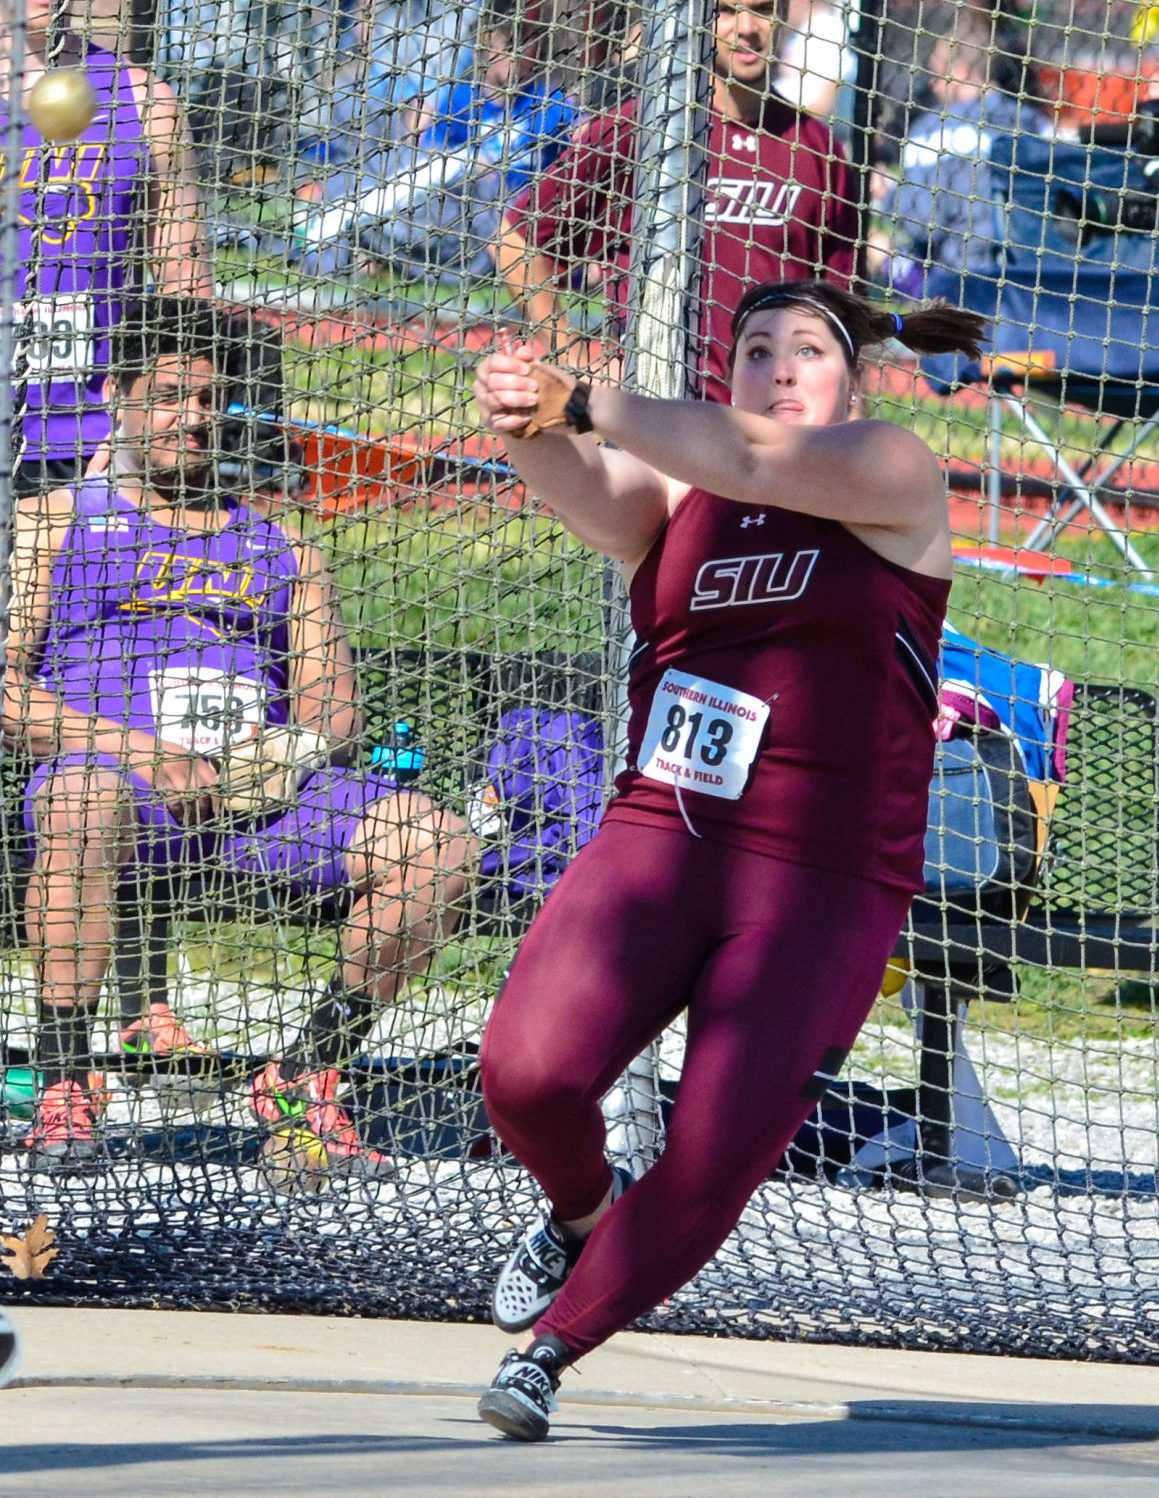 Then-senior thrower DeAnna Price throws the hammer throw on March 26 at the Bill Cornell Spring Classic. (DailyEgyptian.com file photo)